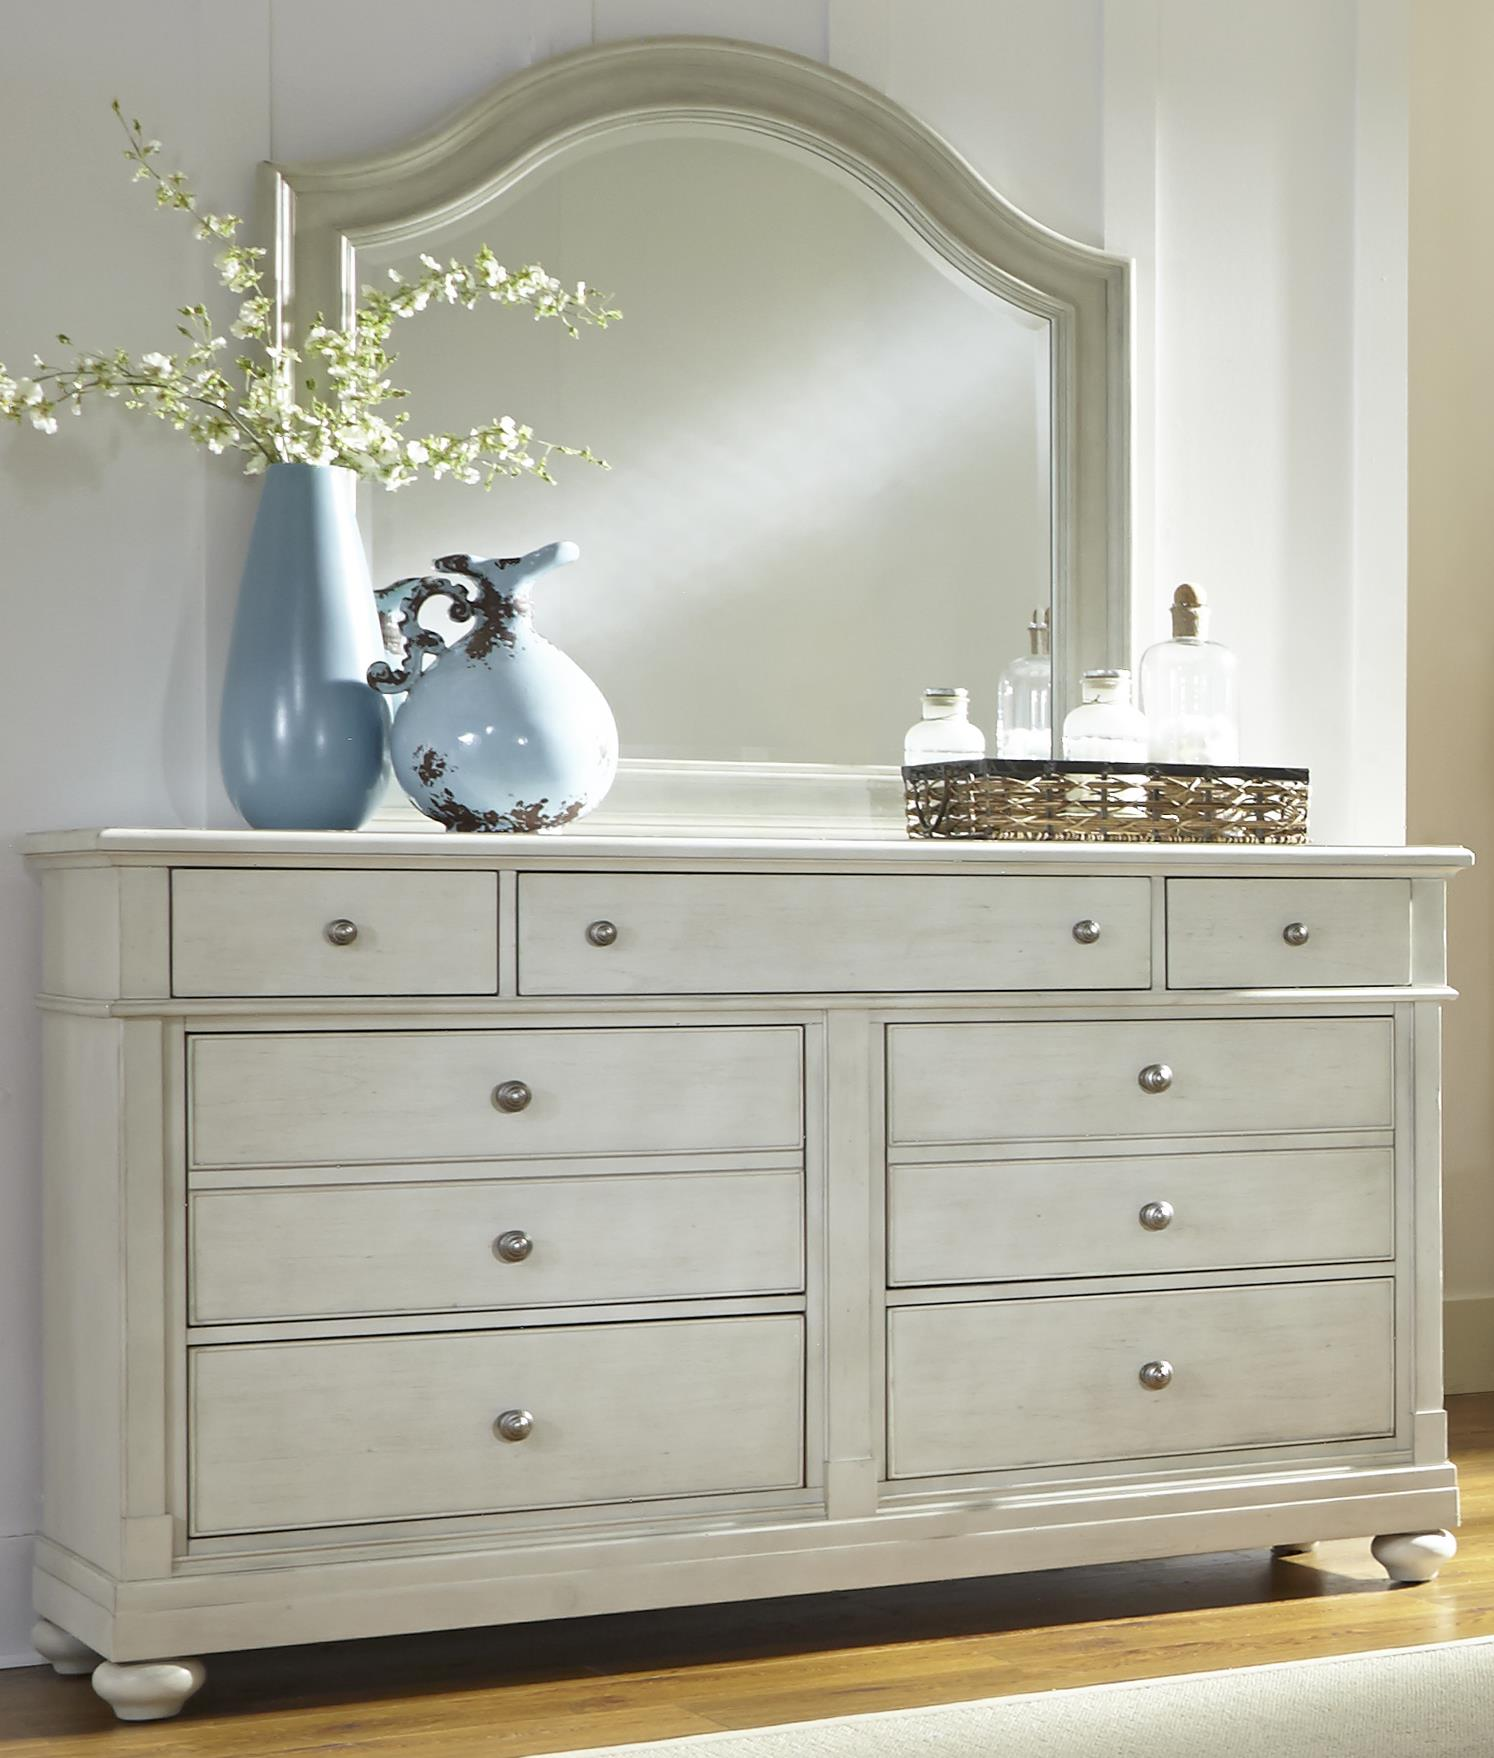 Liberty Furniture Harbor View Dresser with Mirror - Item Number: 731-BR-DM